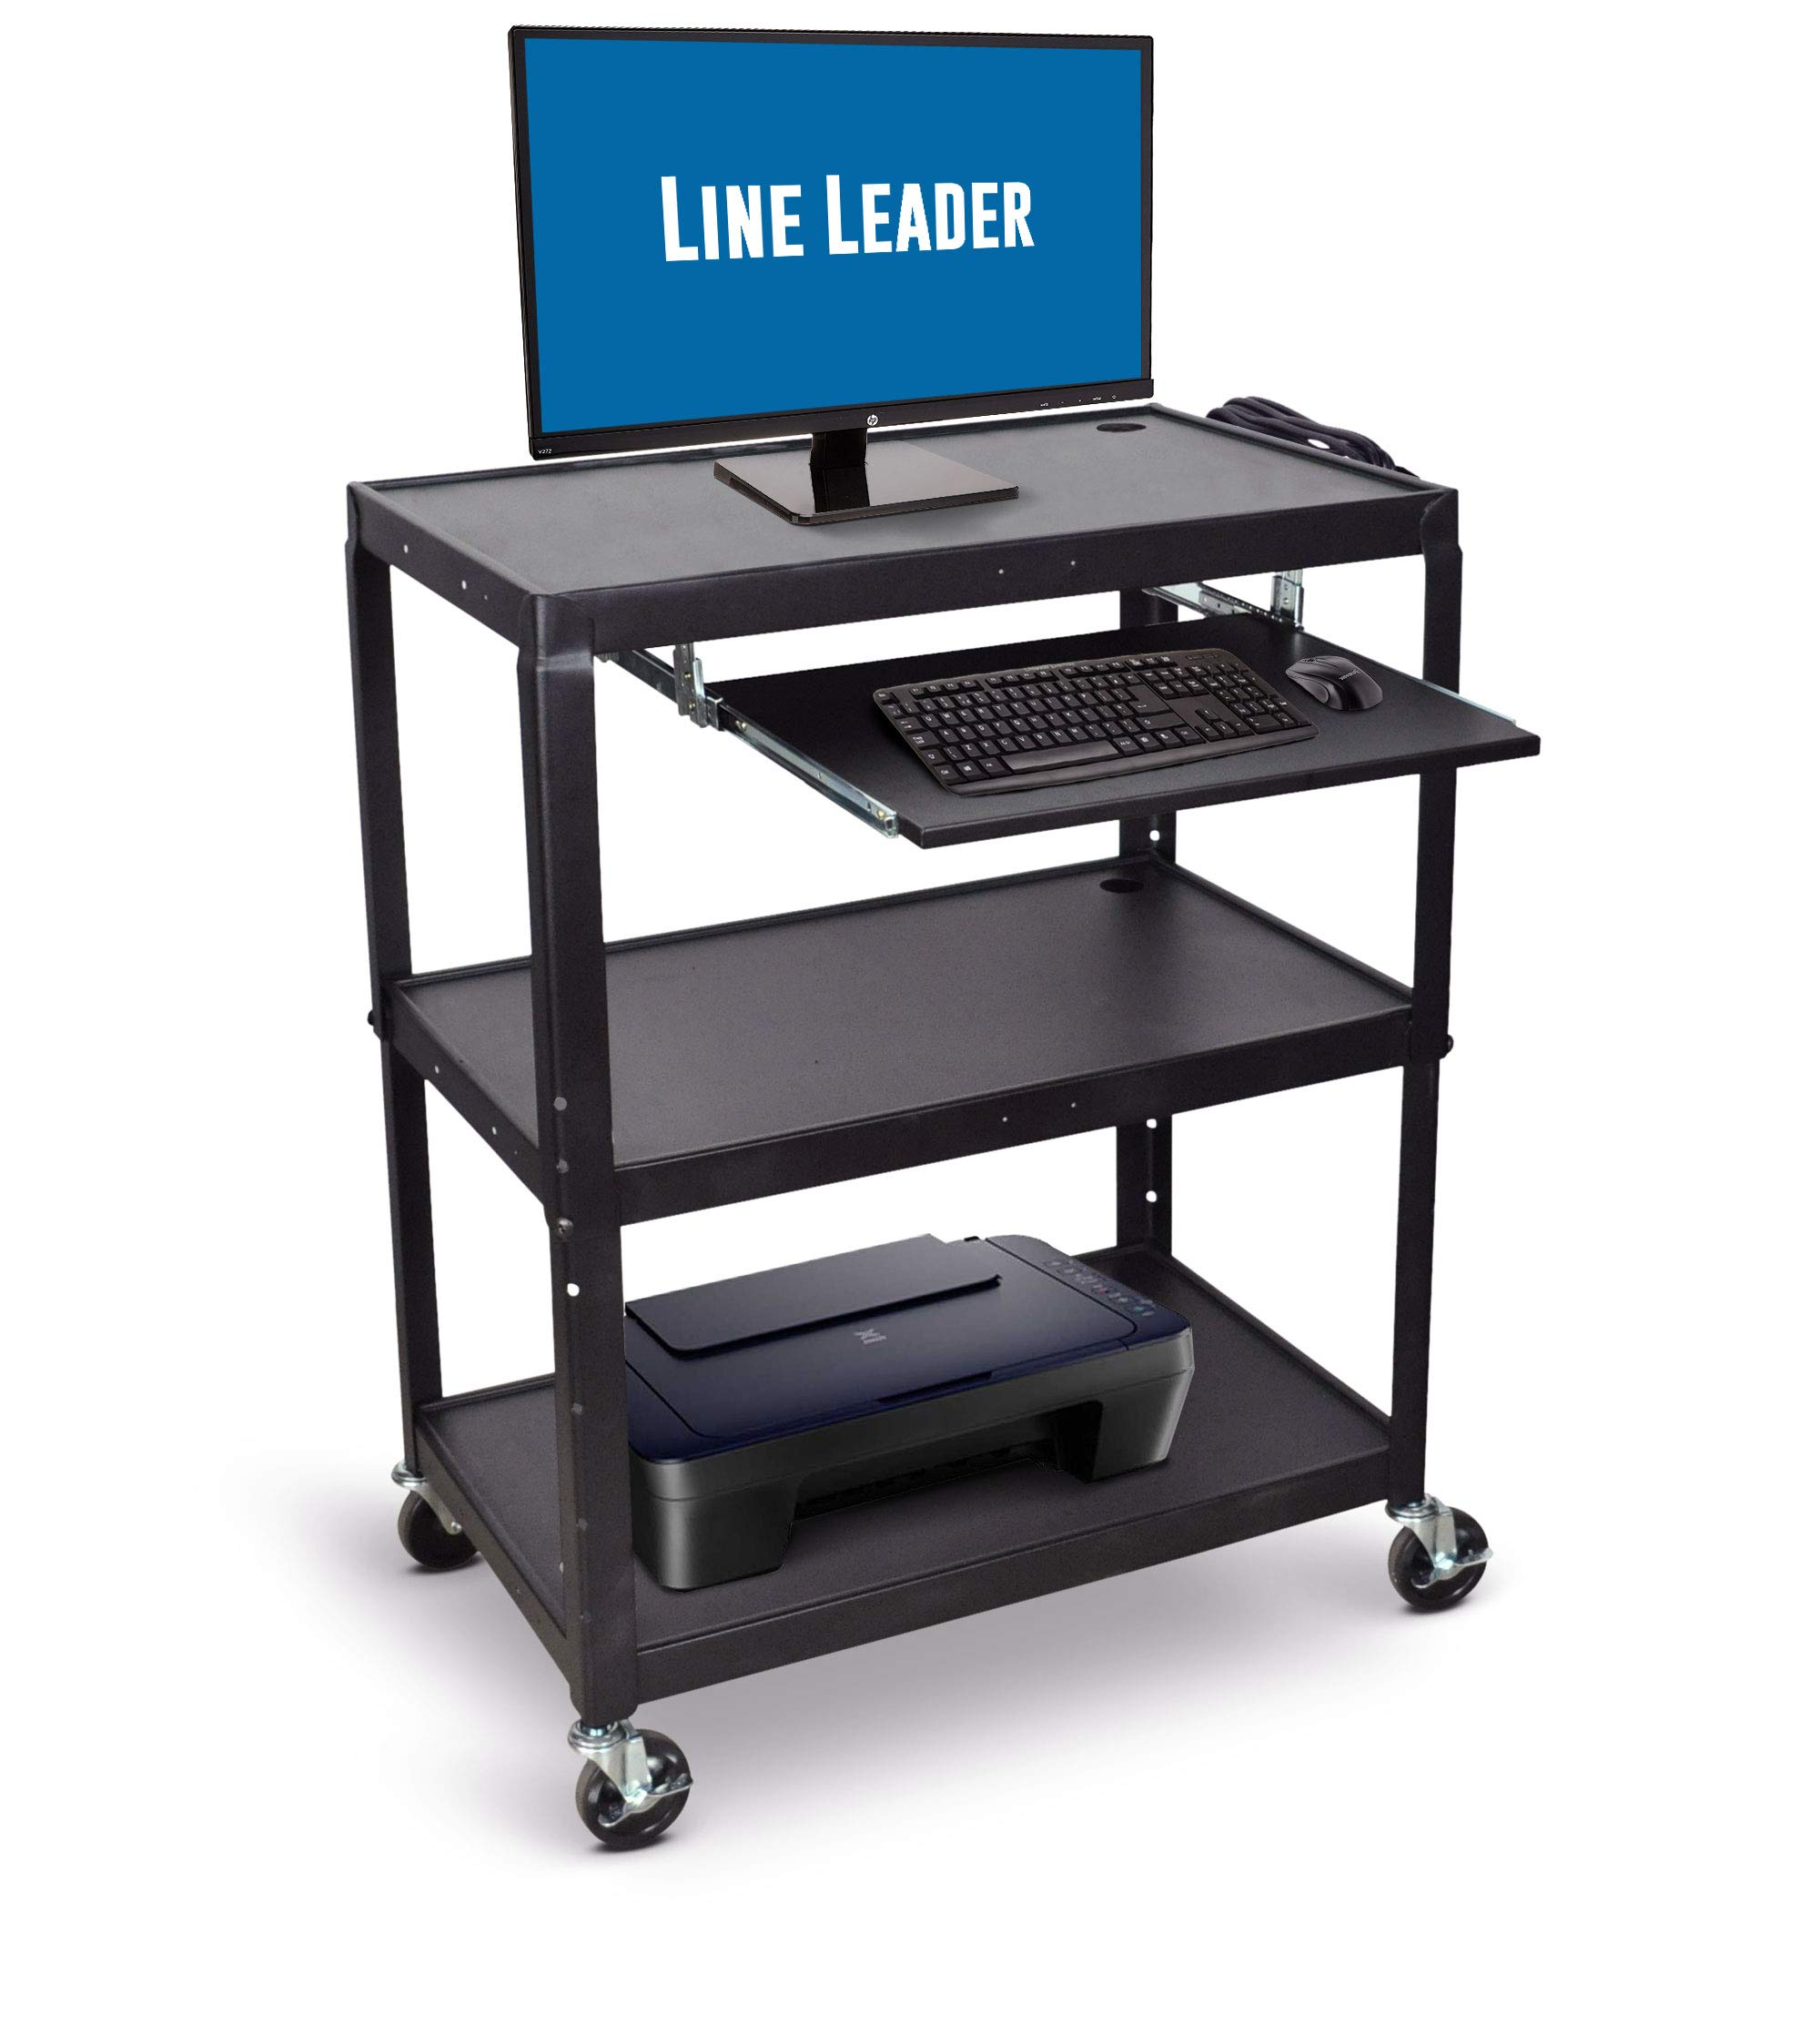 Line Leader Extra Wide AV Cart with Lockable Wheels -Adjustable Shelf Height- Includes Pullout Keyboard Tray and Cord Management! (42x32x20) (Extra Wide AV Cart - Black)